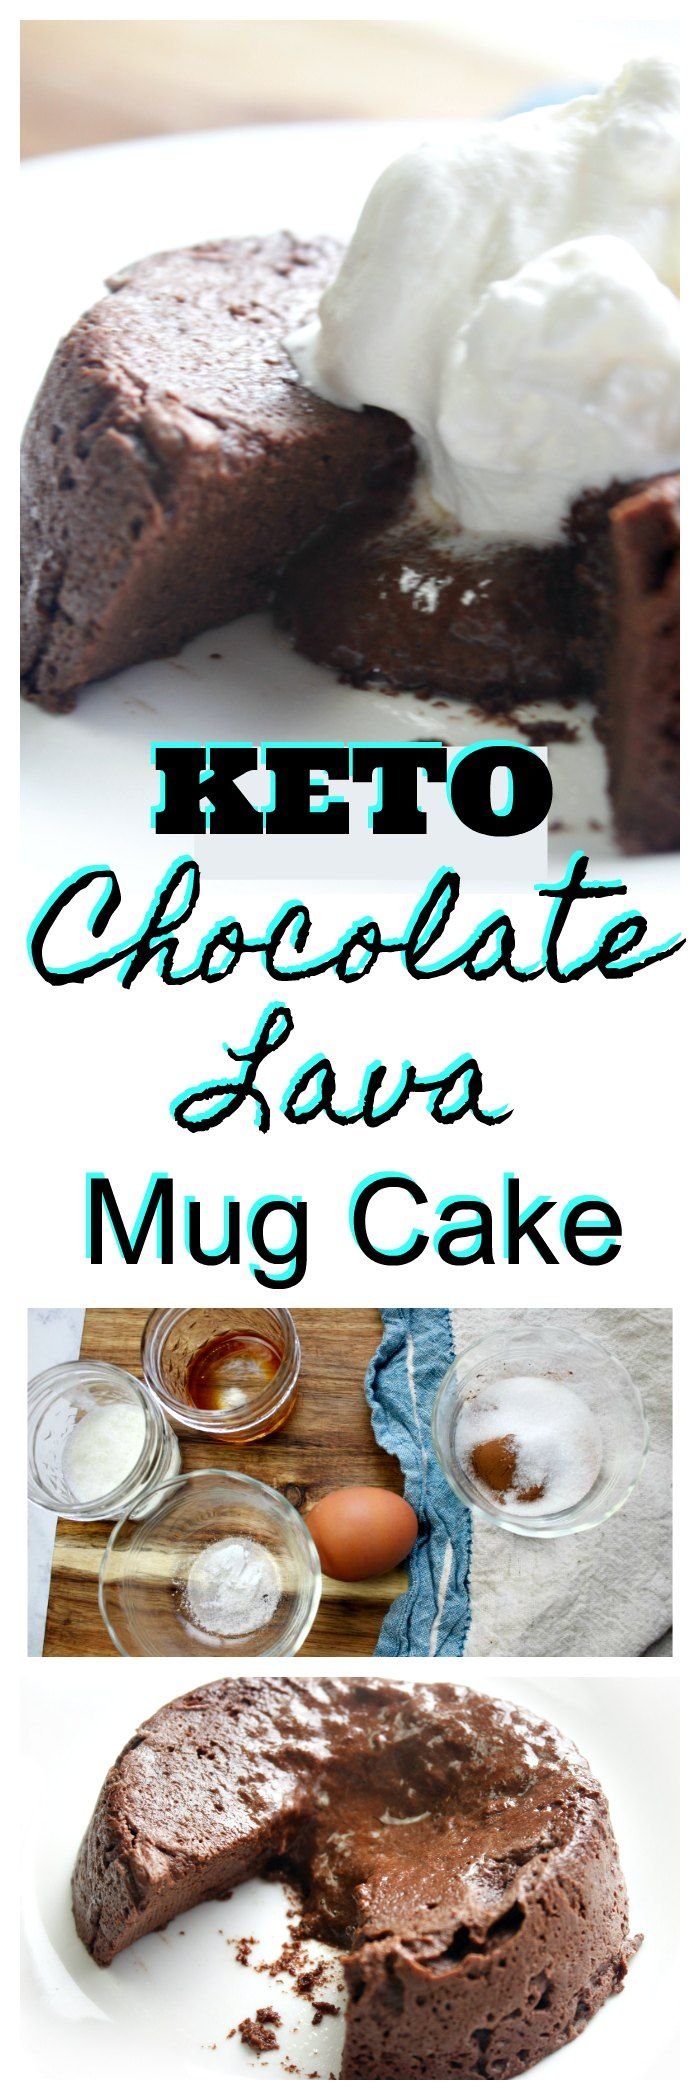 Keto Chocolate Lava Mug Cake Recipe via @isavea2z